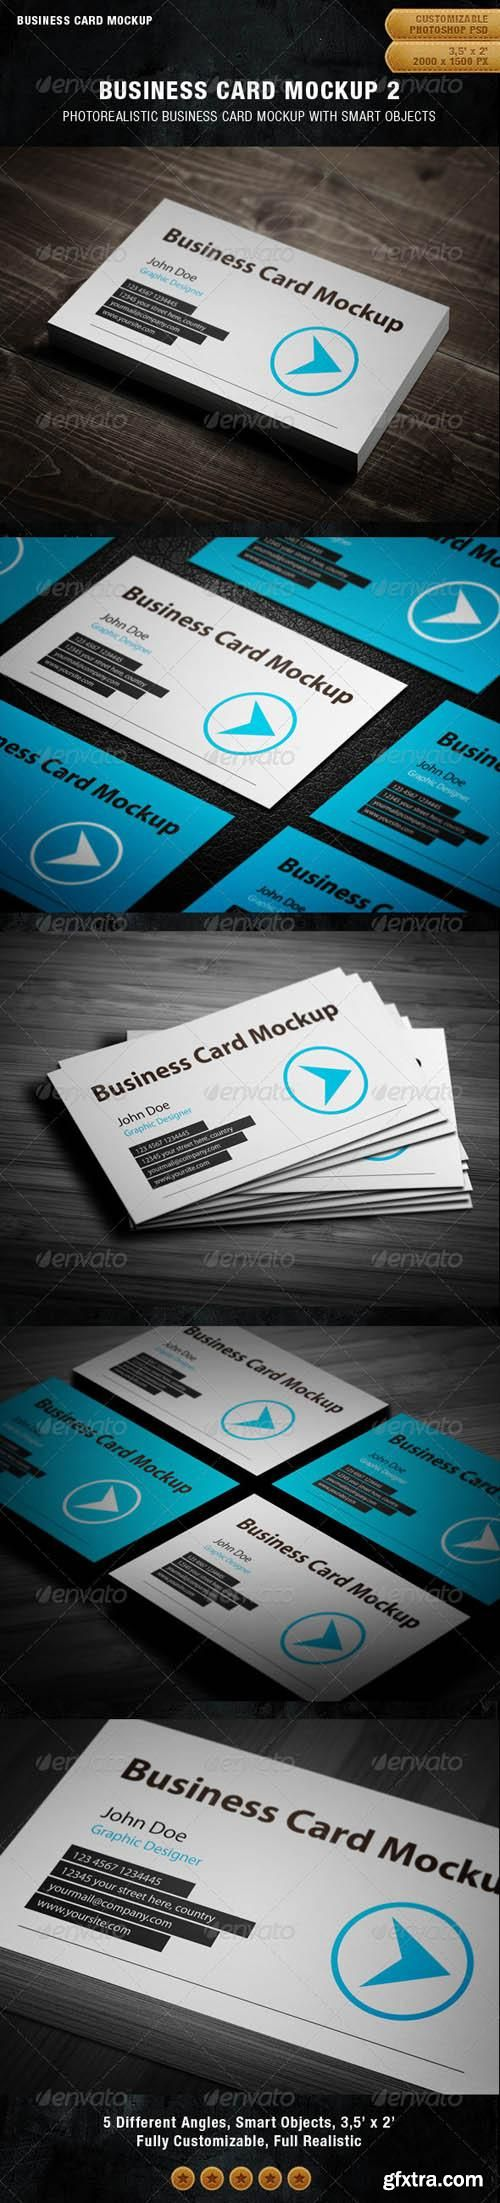 99 best mockups images on pinterest miniatures mockup and model buy business card mockup 2 by bluemonkeylab on graphicriver business card mockup 2 clean and easy to use business card mockup present your business cards reheart Images